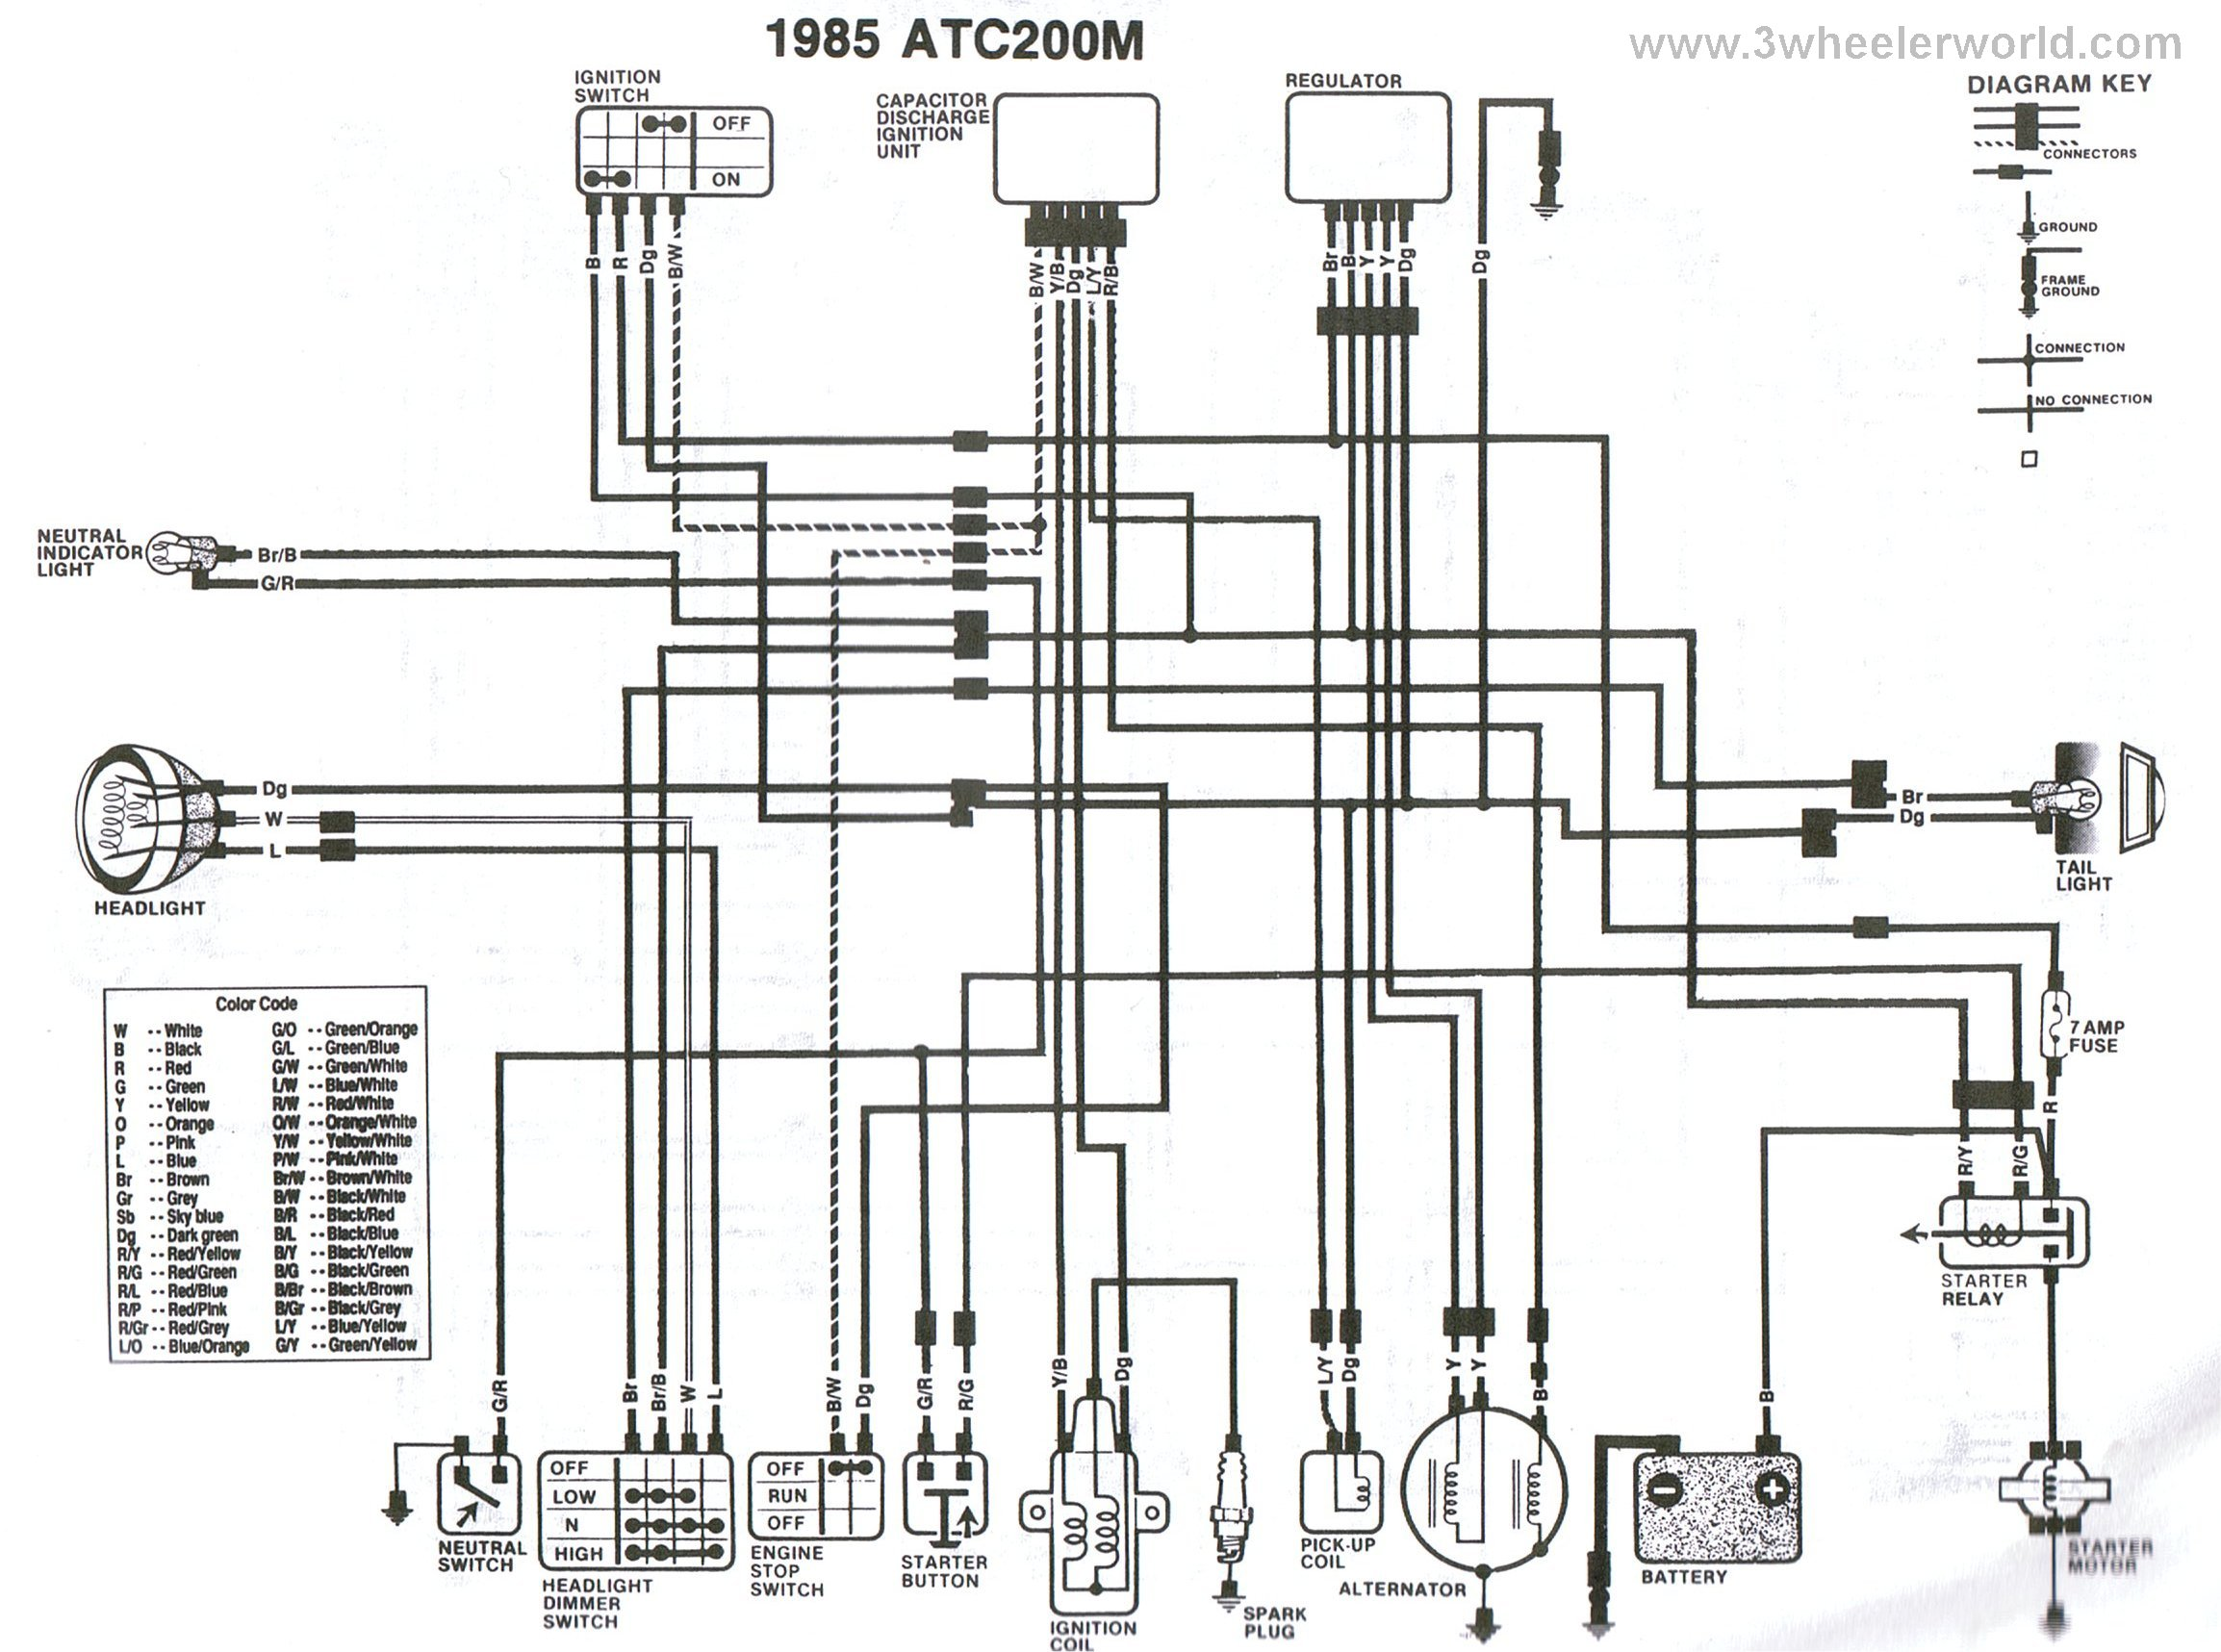 Honda 200s Motor Wiring Diagram - Electrical Wiring Diagram •